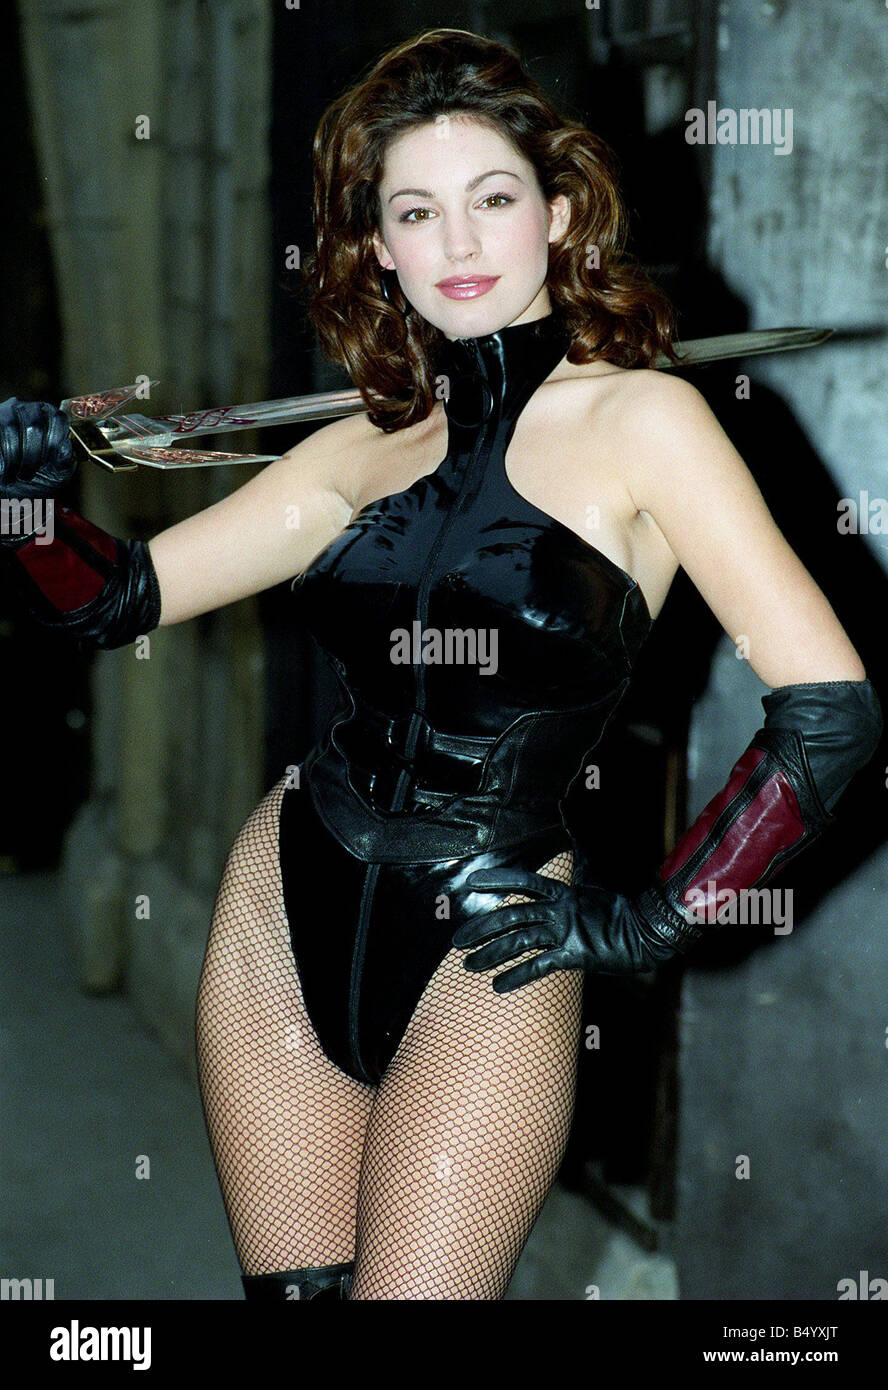 Cover girl Kelly Brook at the London Dungeon s 1998 to help promote the new computer game The Deathtrap Dungeon - Stock Image